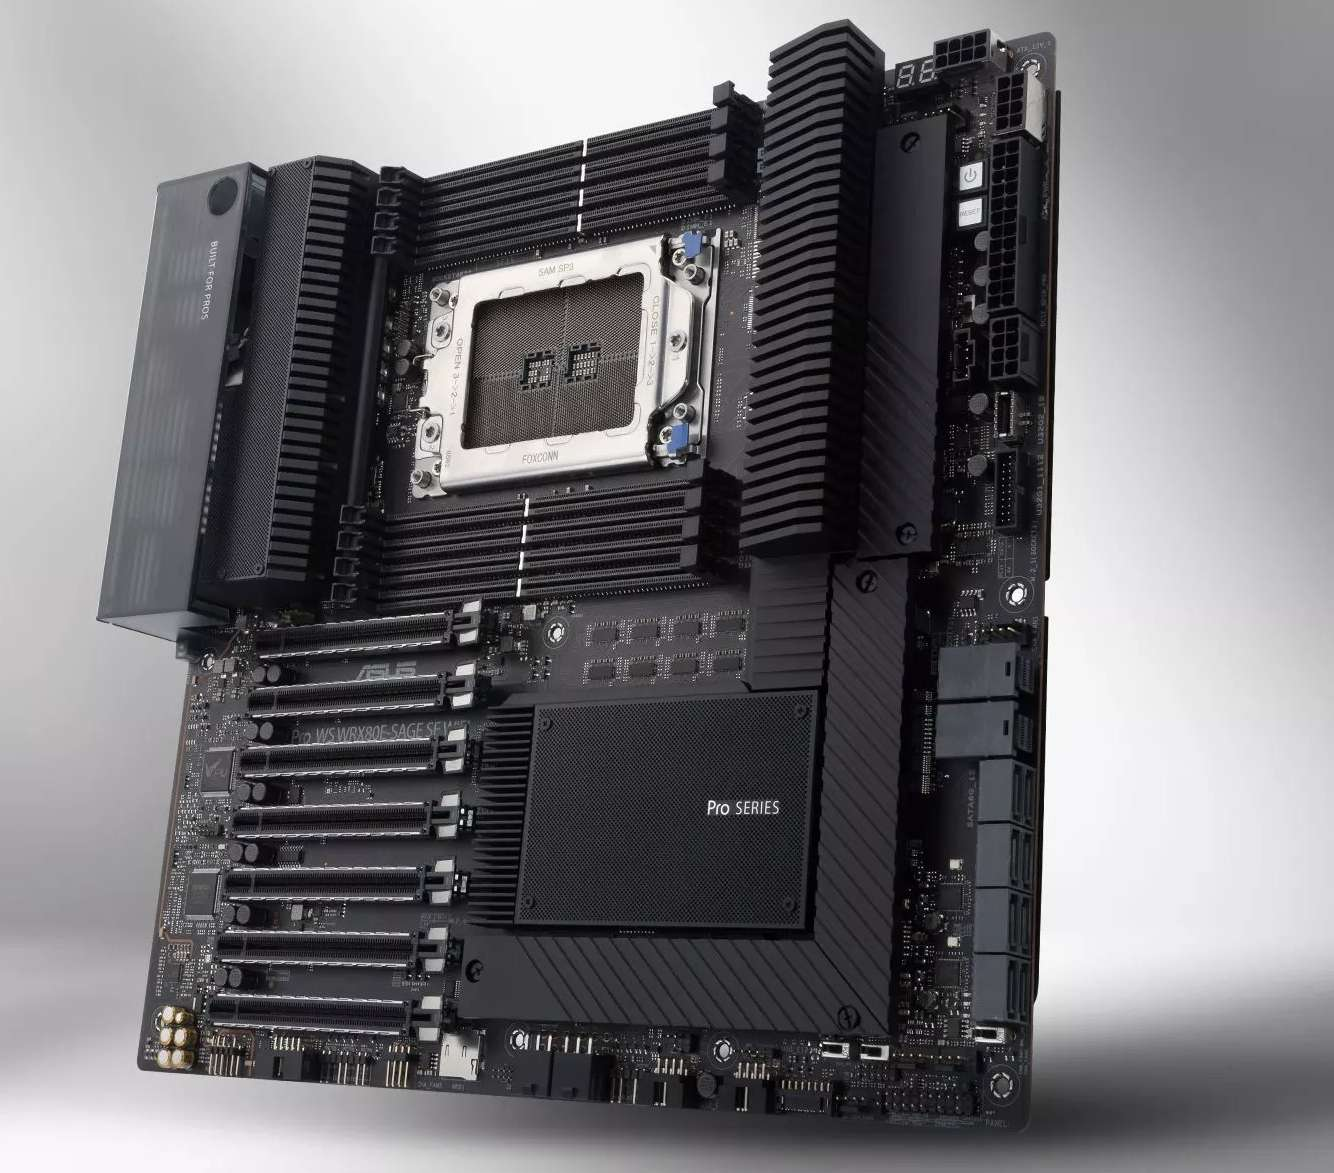 The Asus Pro WS WRX80E-SAGE SE WIFI Motherboard.